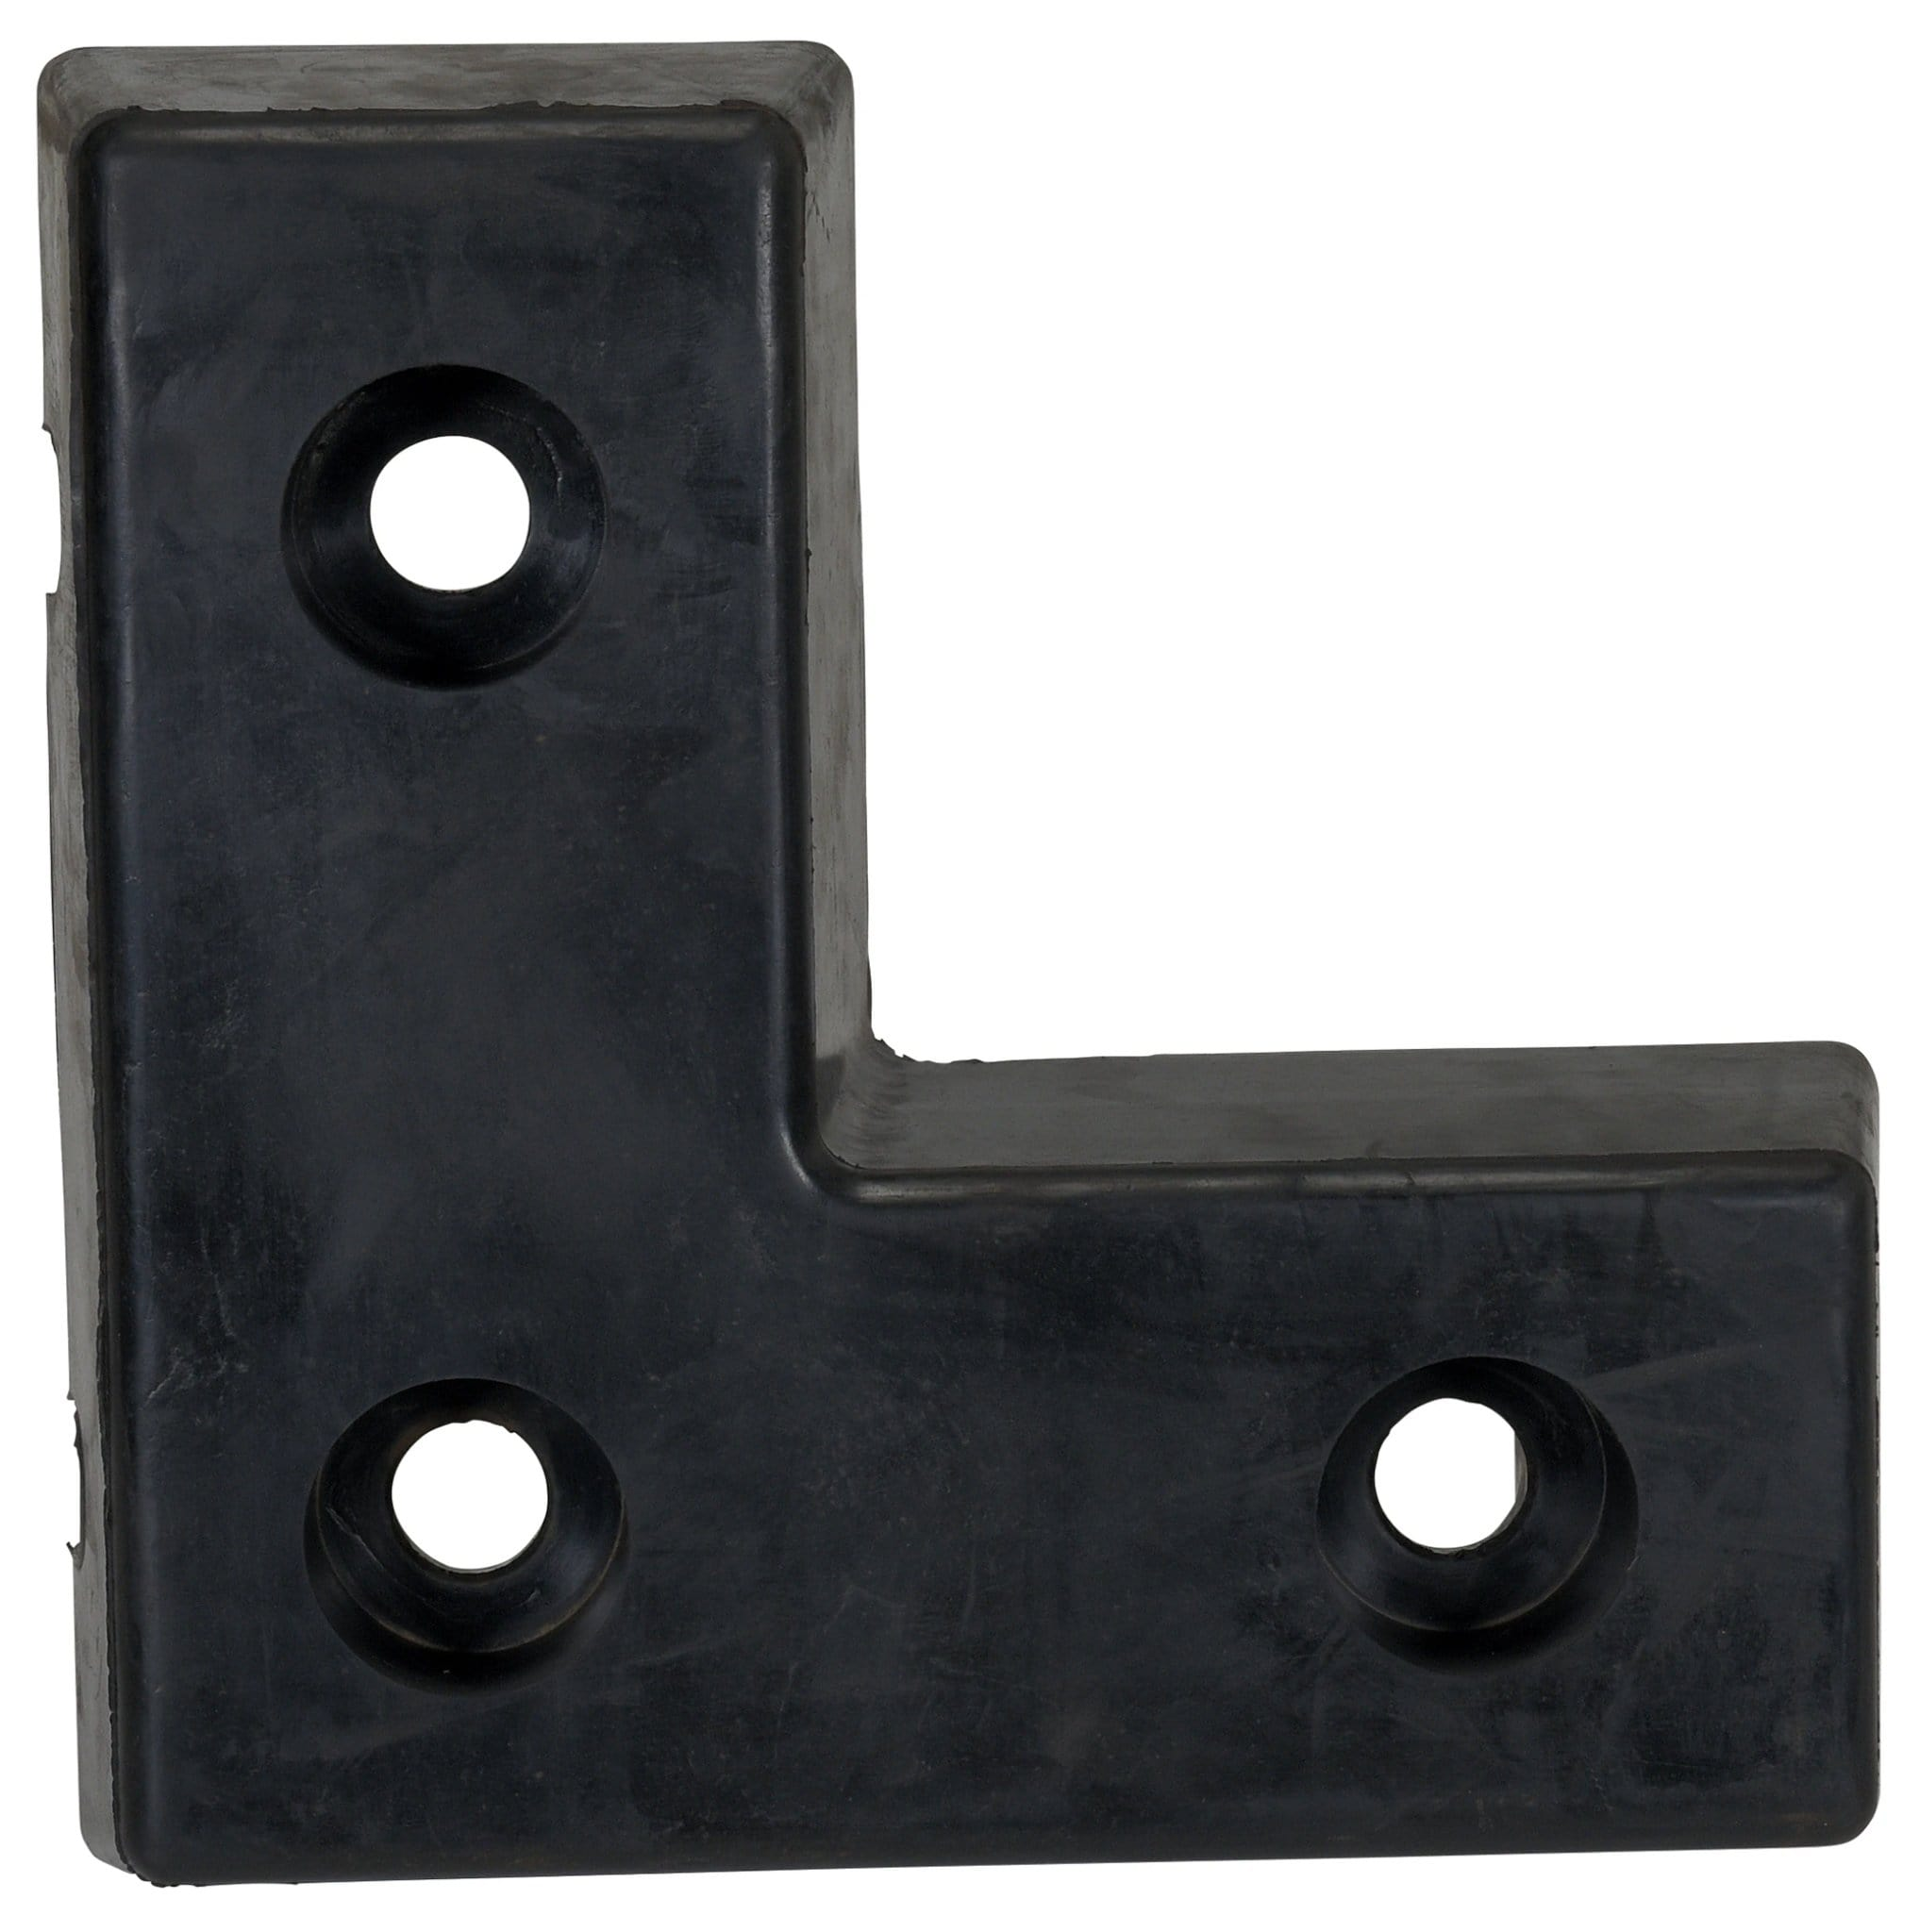 Vestil Molded Rubber Bumper L-Shape - W - 18 in x H - 18 in x D - 4 in - Model L-1818-4